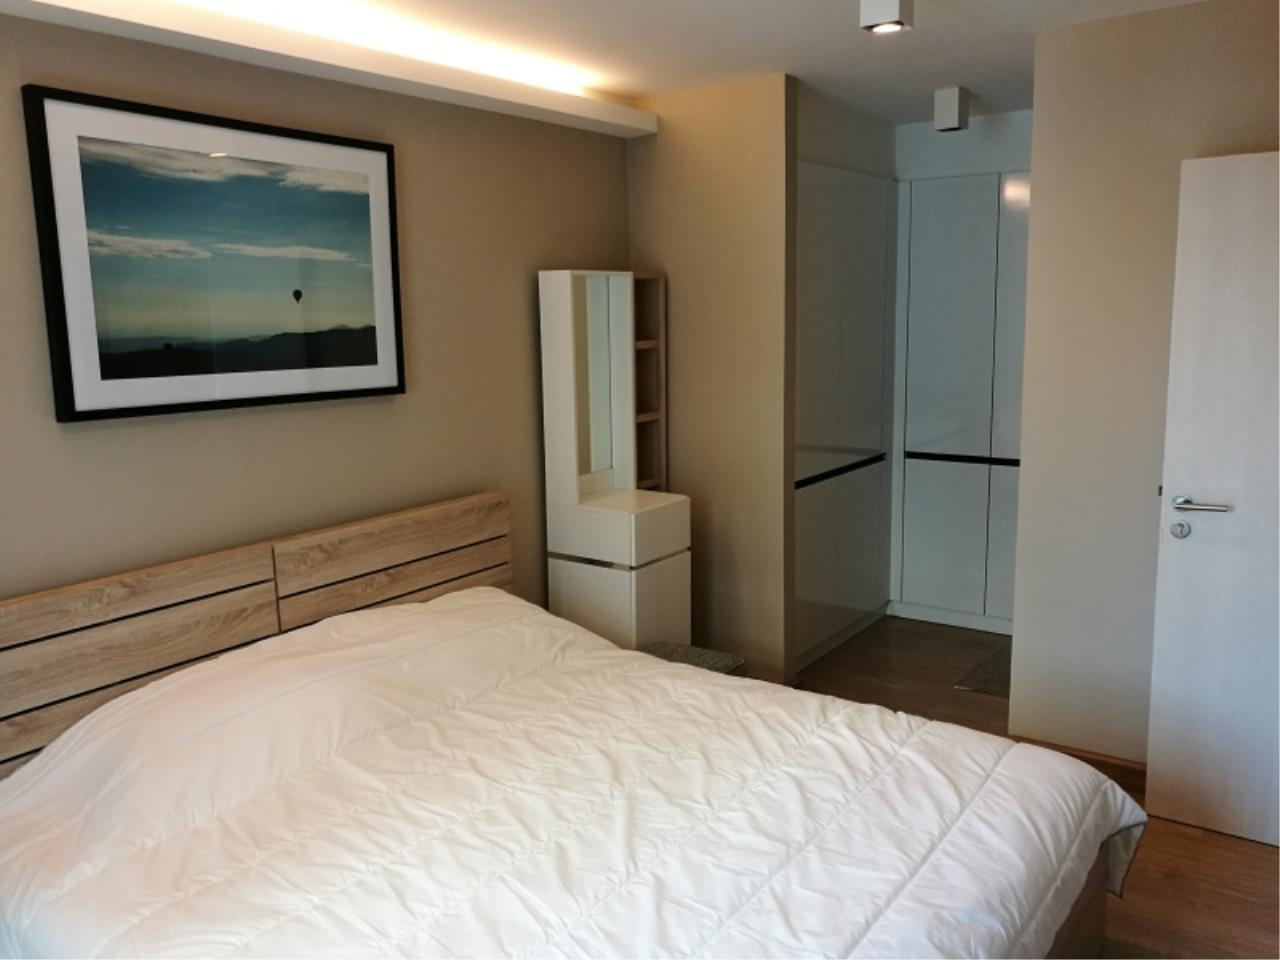 Century21 Skylux Agency's Maestro 39 / Condo For Sale / 2 Bedroom / 60 SQM / BTS Phrom Phong / Bangkok 4